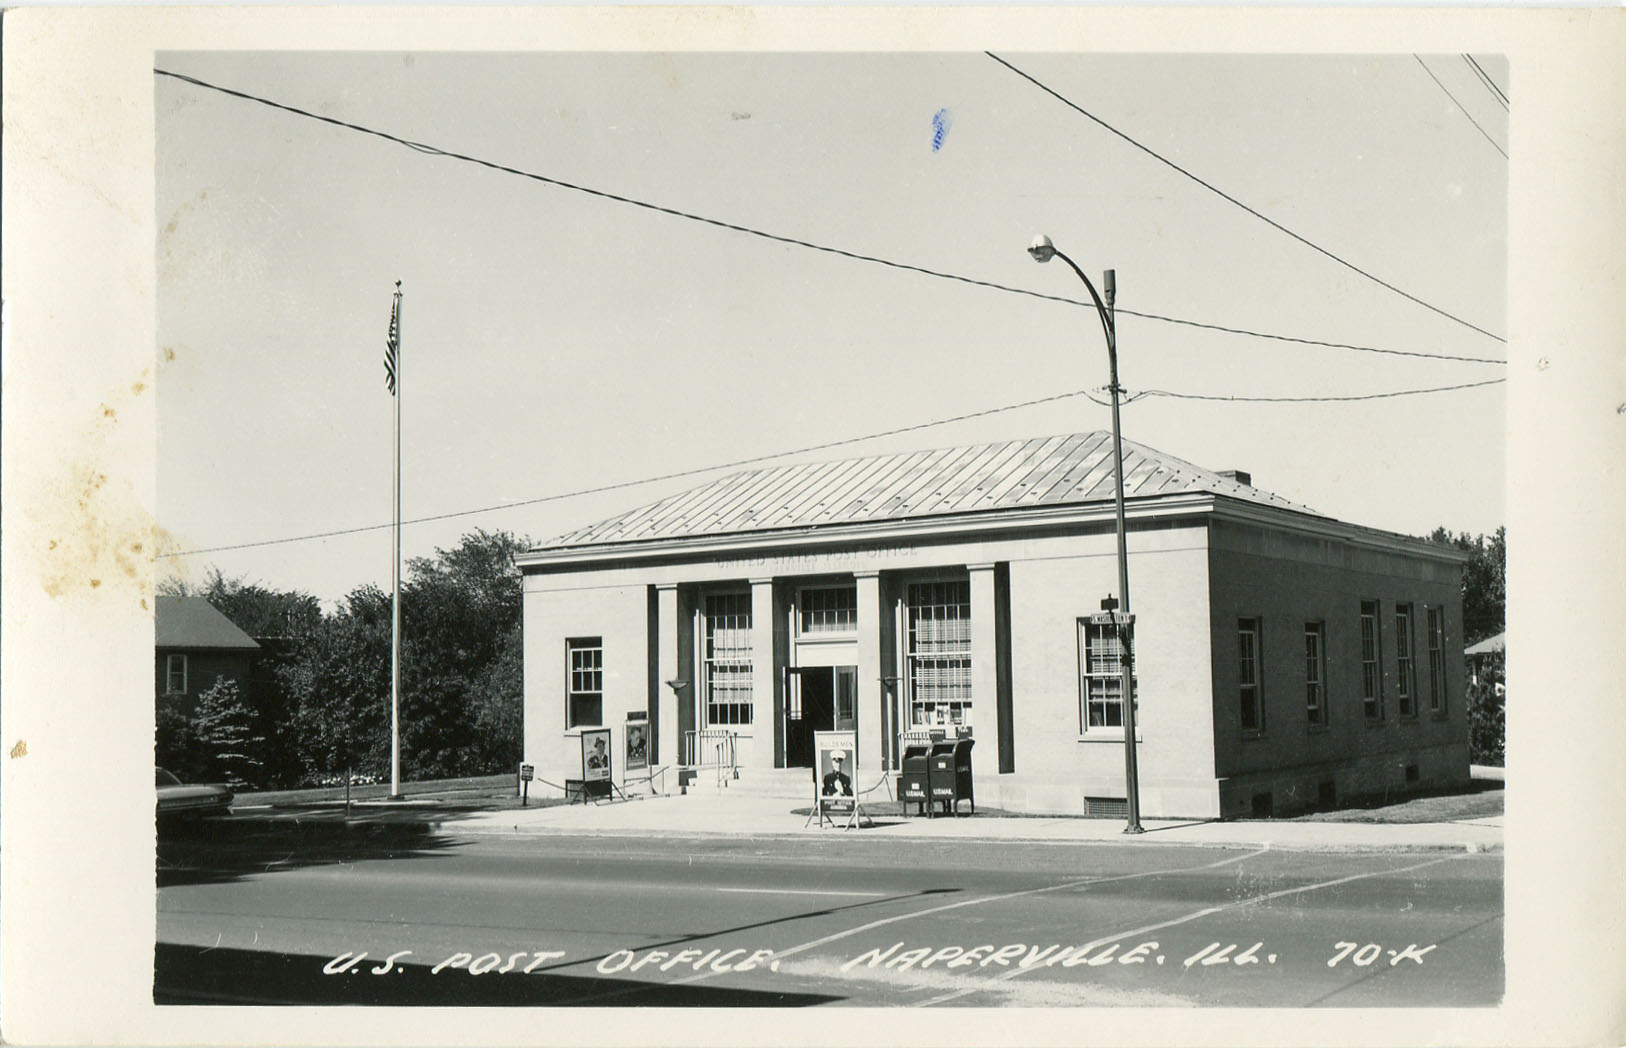 Washington Street post office postcard